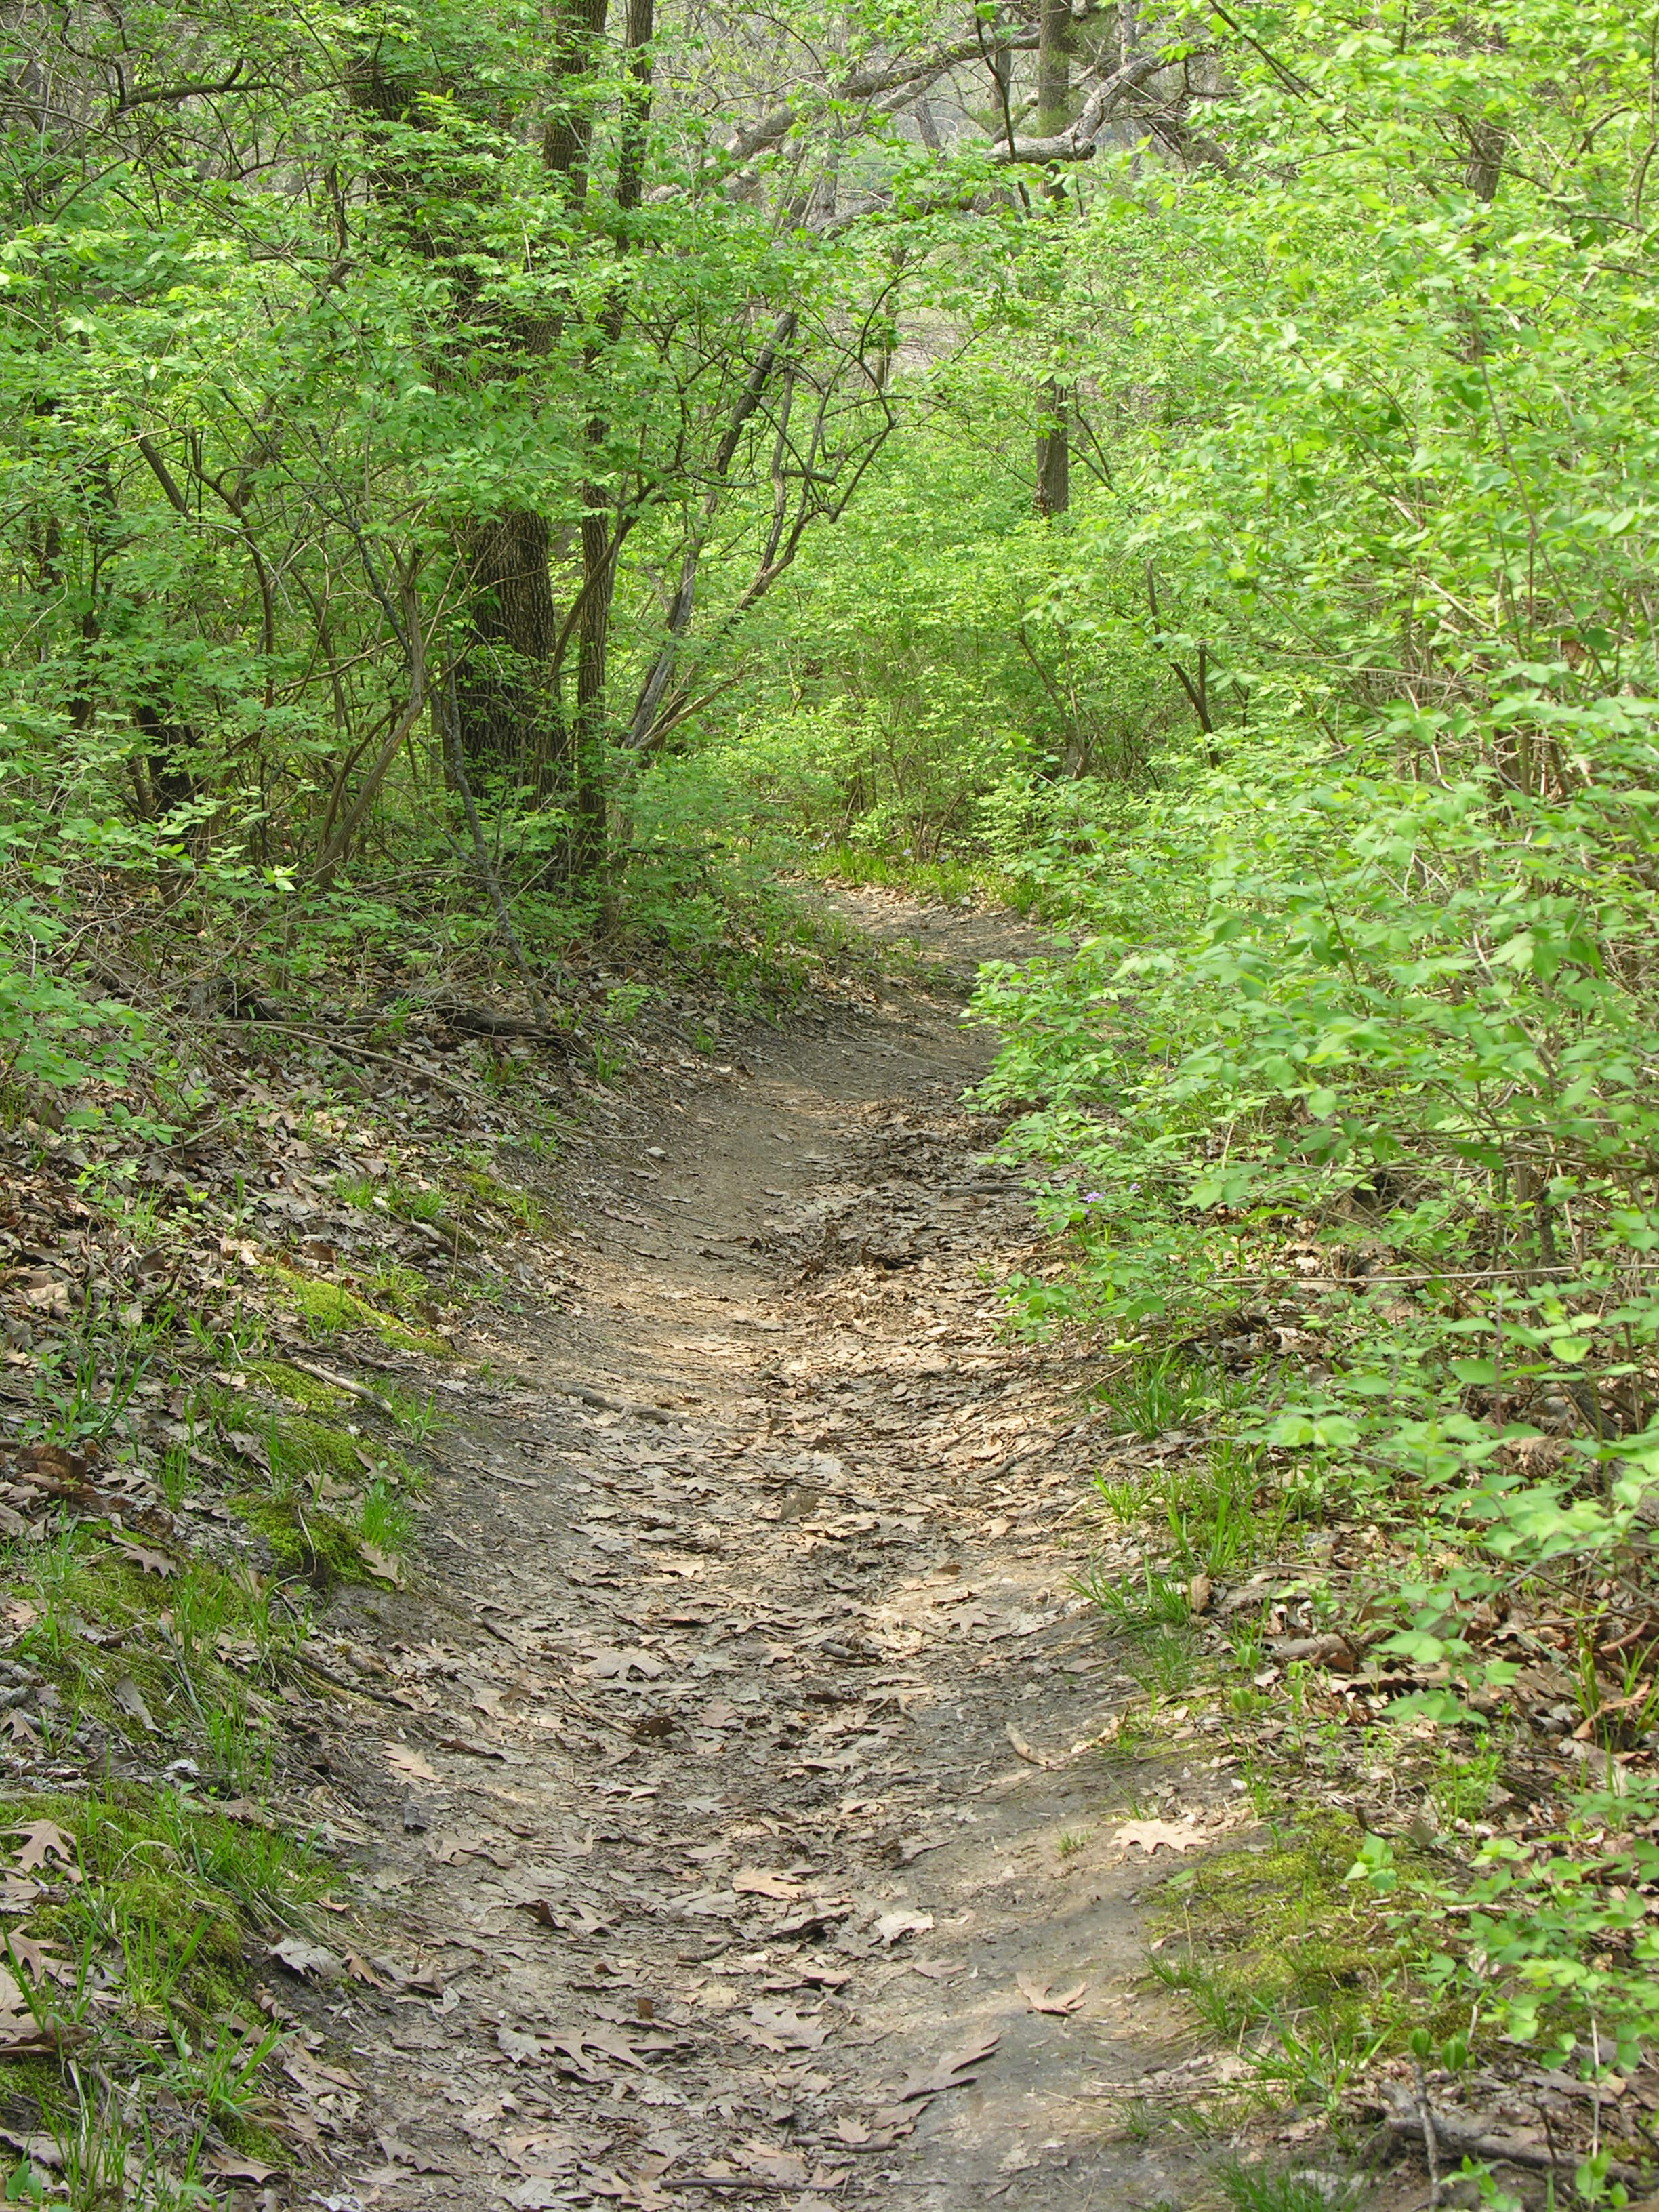 Trail through oak and hickory forest at Kaw River State Park.